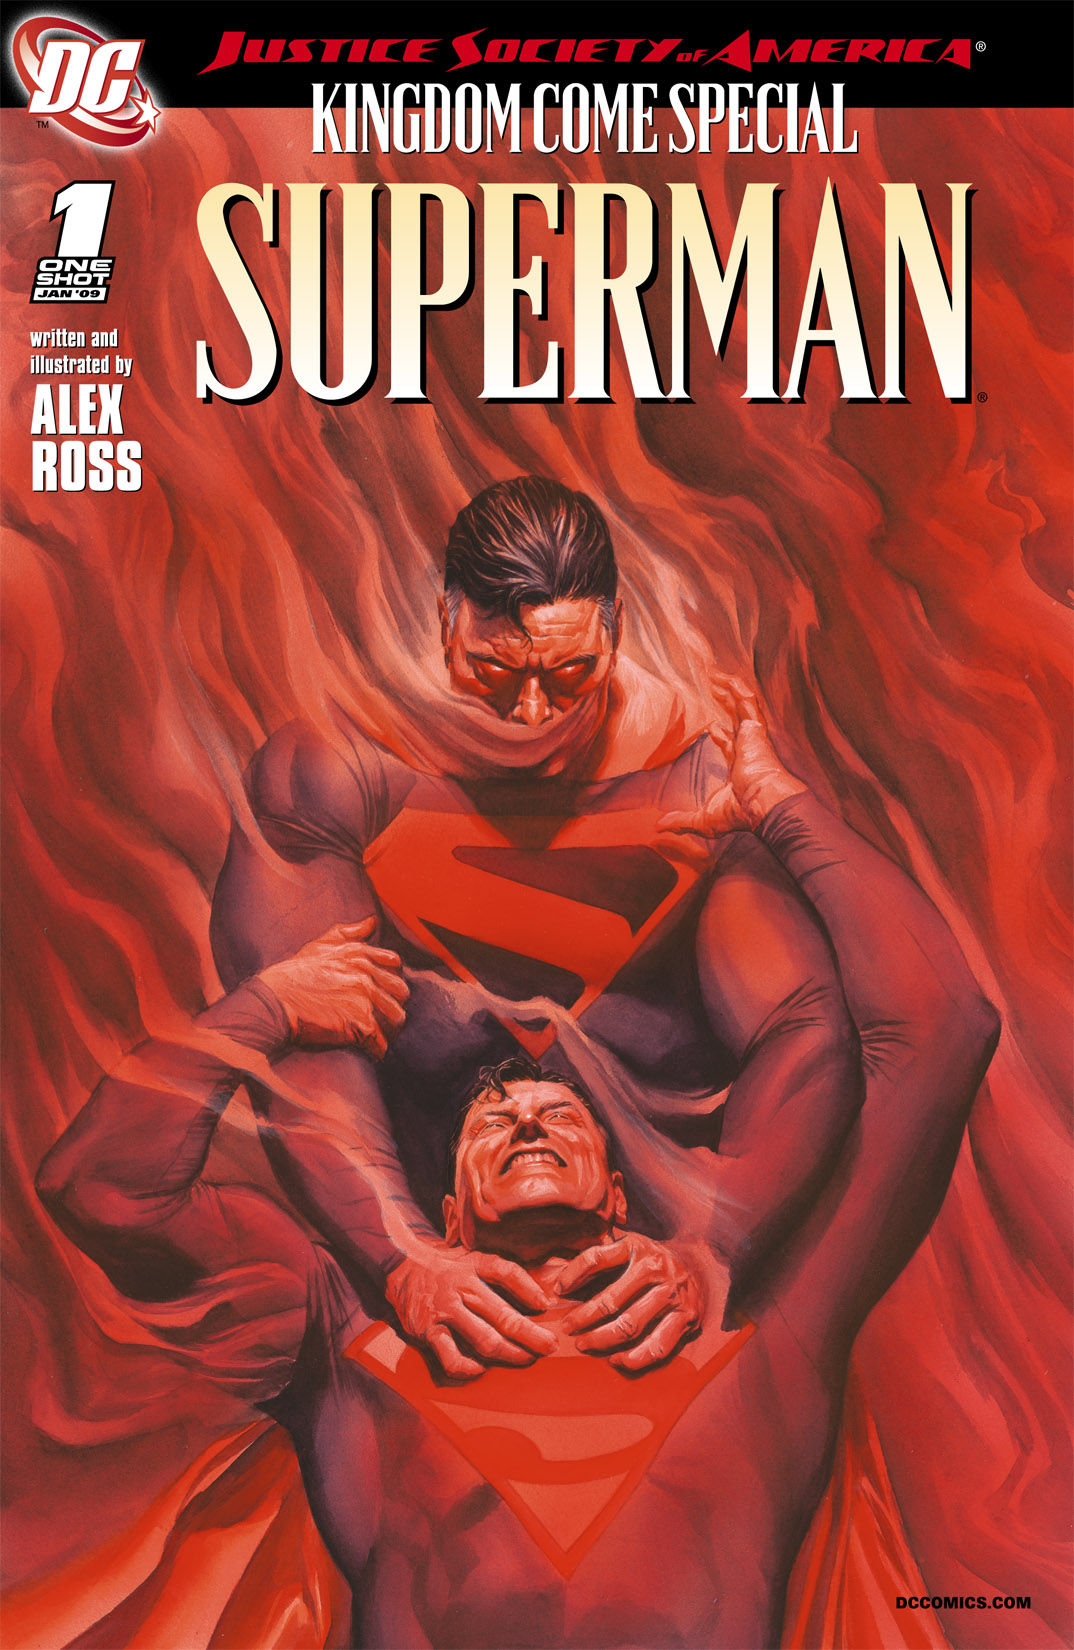 Read online JSA Kingdom Come Special: Superman comic -  Issue # Full - 1